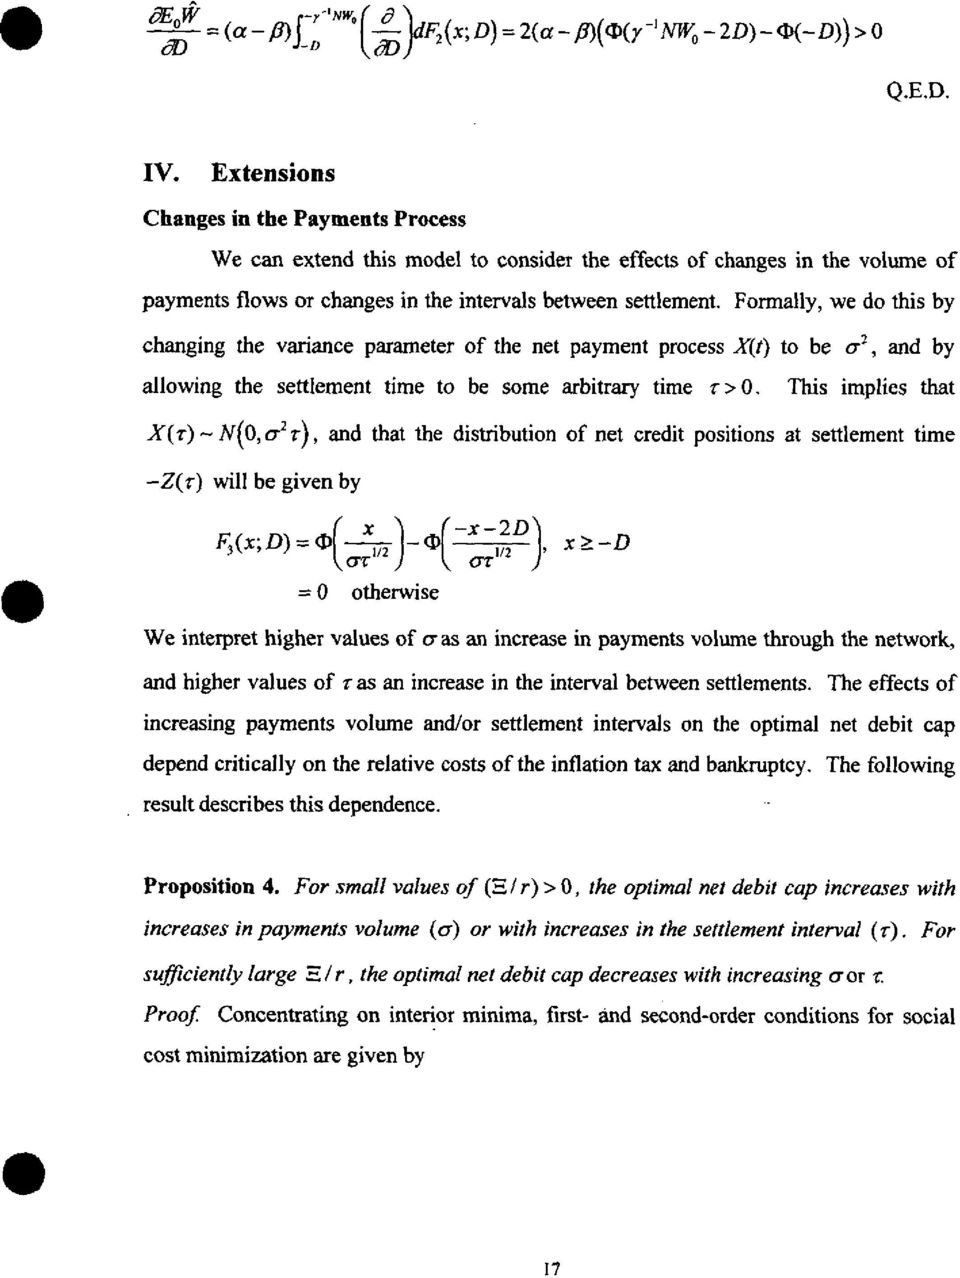 Formally, we do this by changing the variance parameter of the net payment process X(t) to be a2, and by allowing the settlement time to be some arbitrary time r > 0.